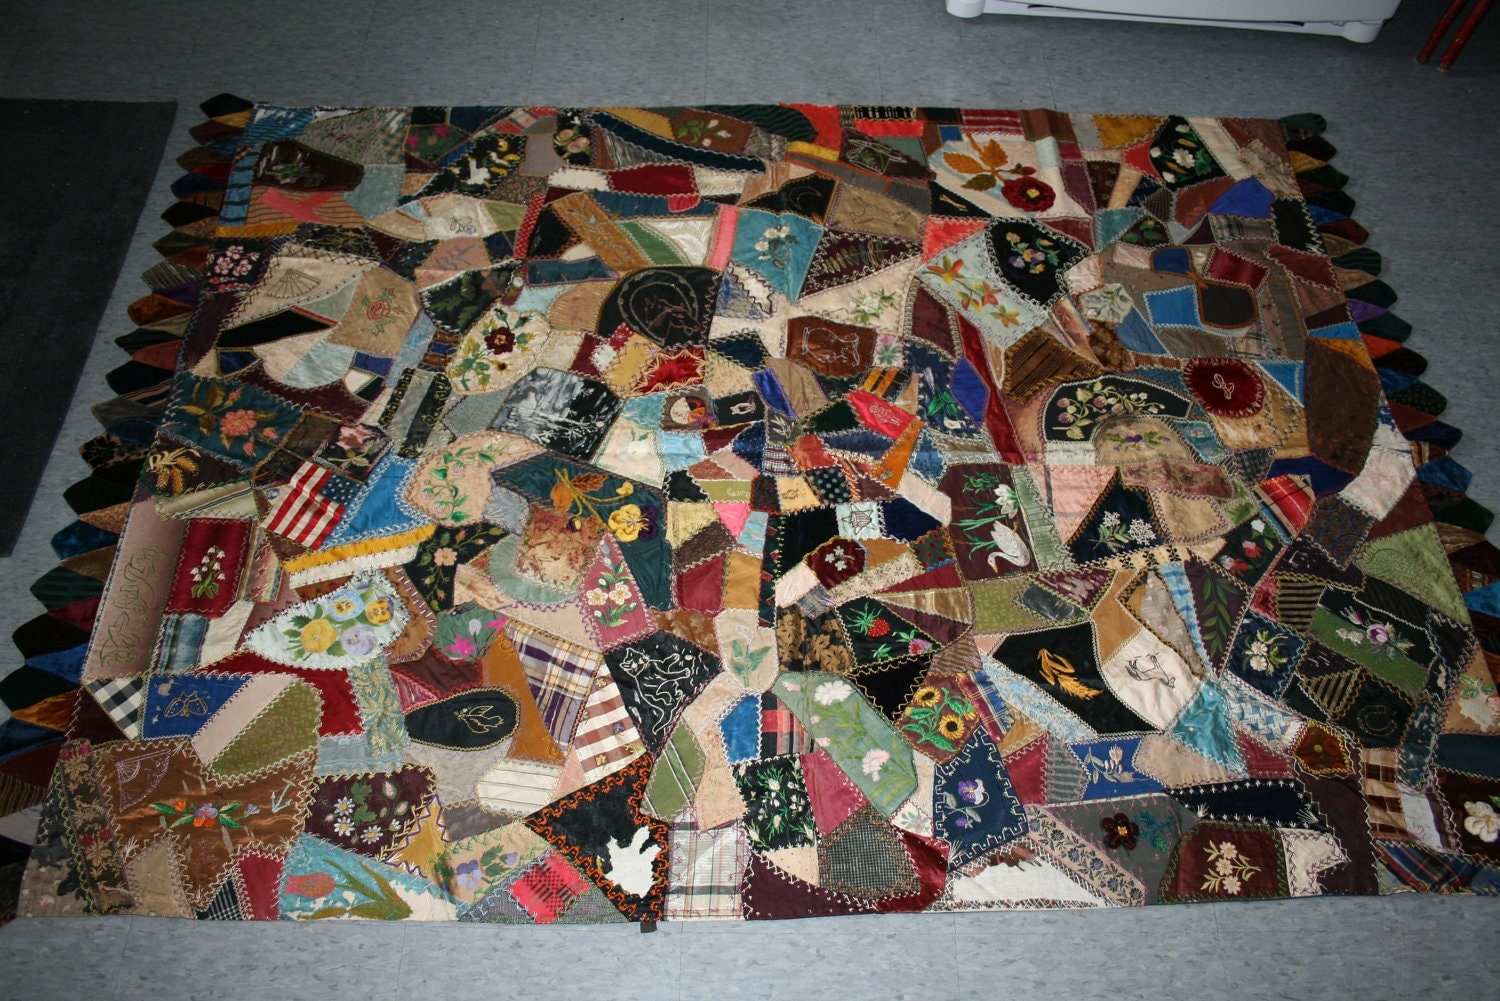 Old Quilts - 374 Photos - Shopping & Retail - PO Box 1212 ...